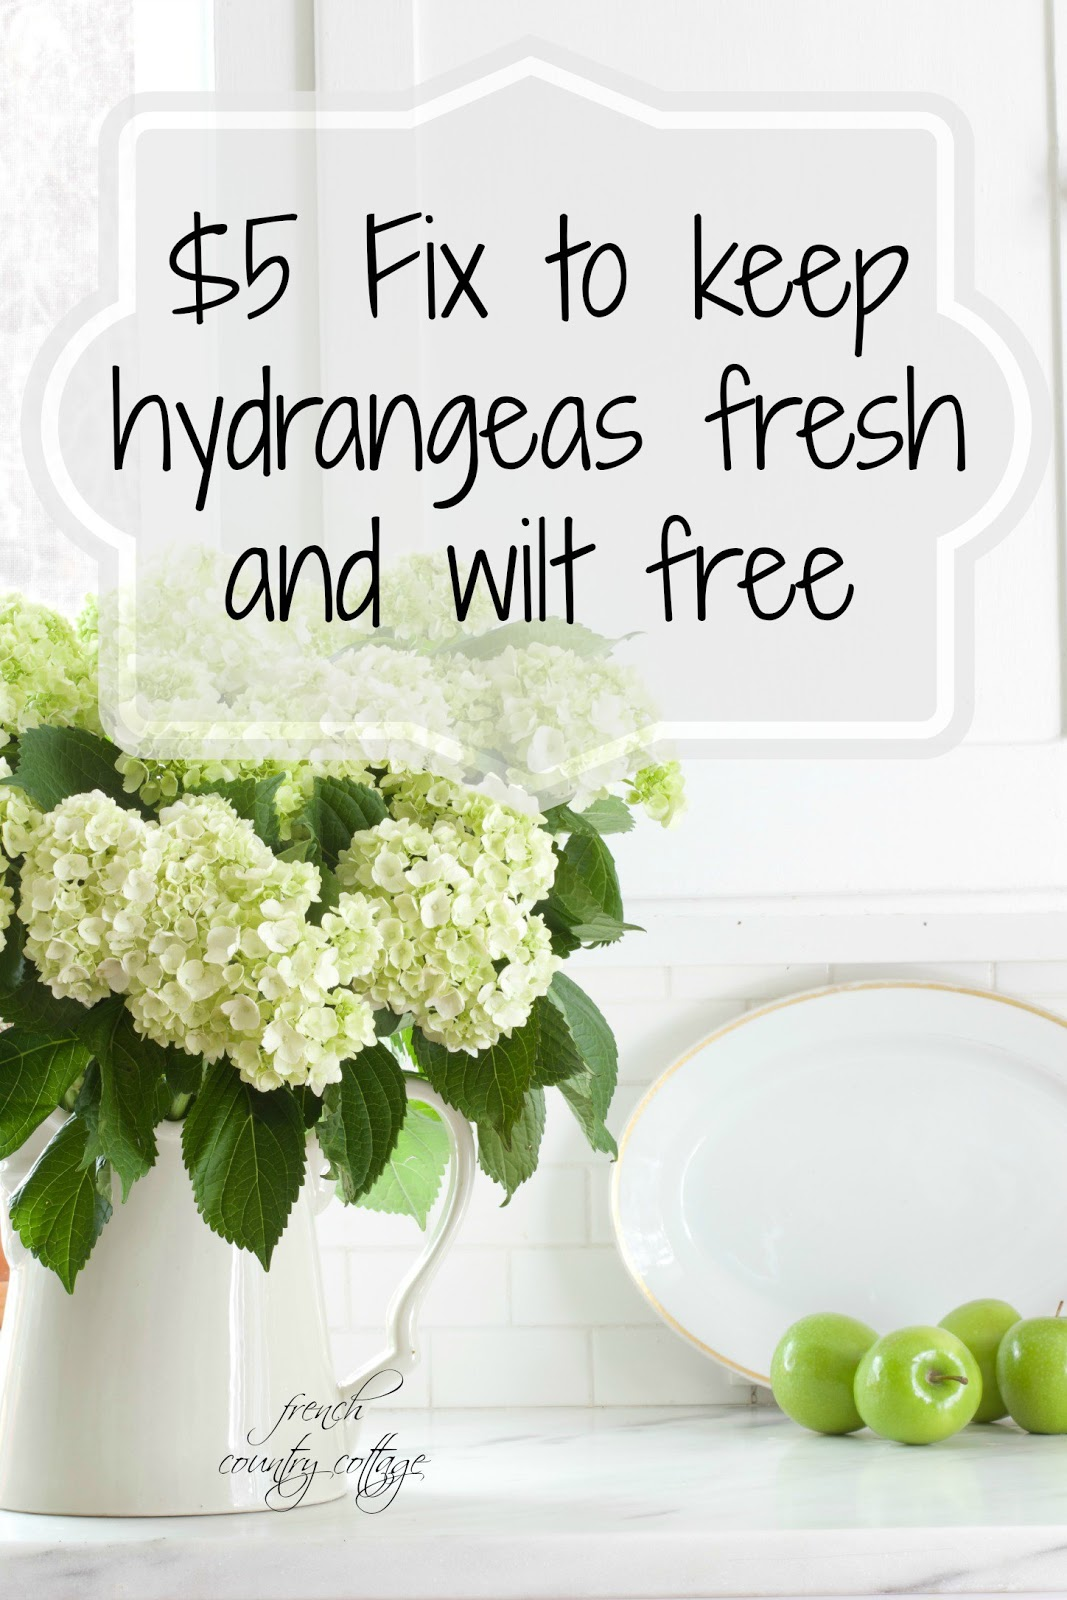 Flower Power $5 fix to keep hydrangeas fresh FRENCH COUNTRY COTTAGE